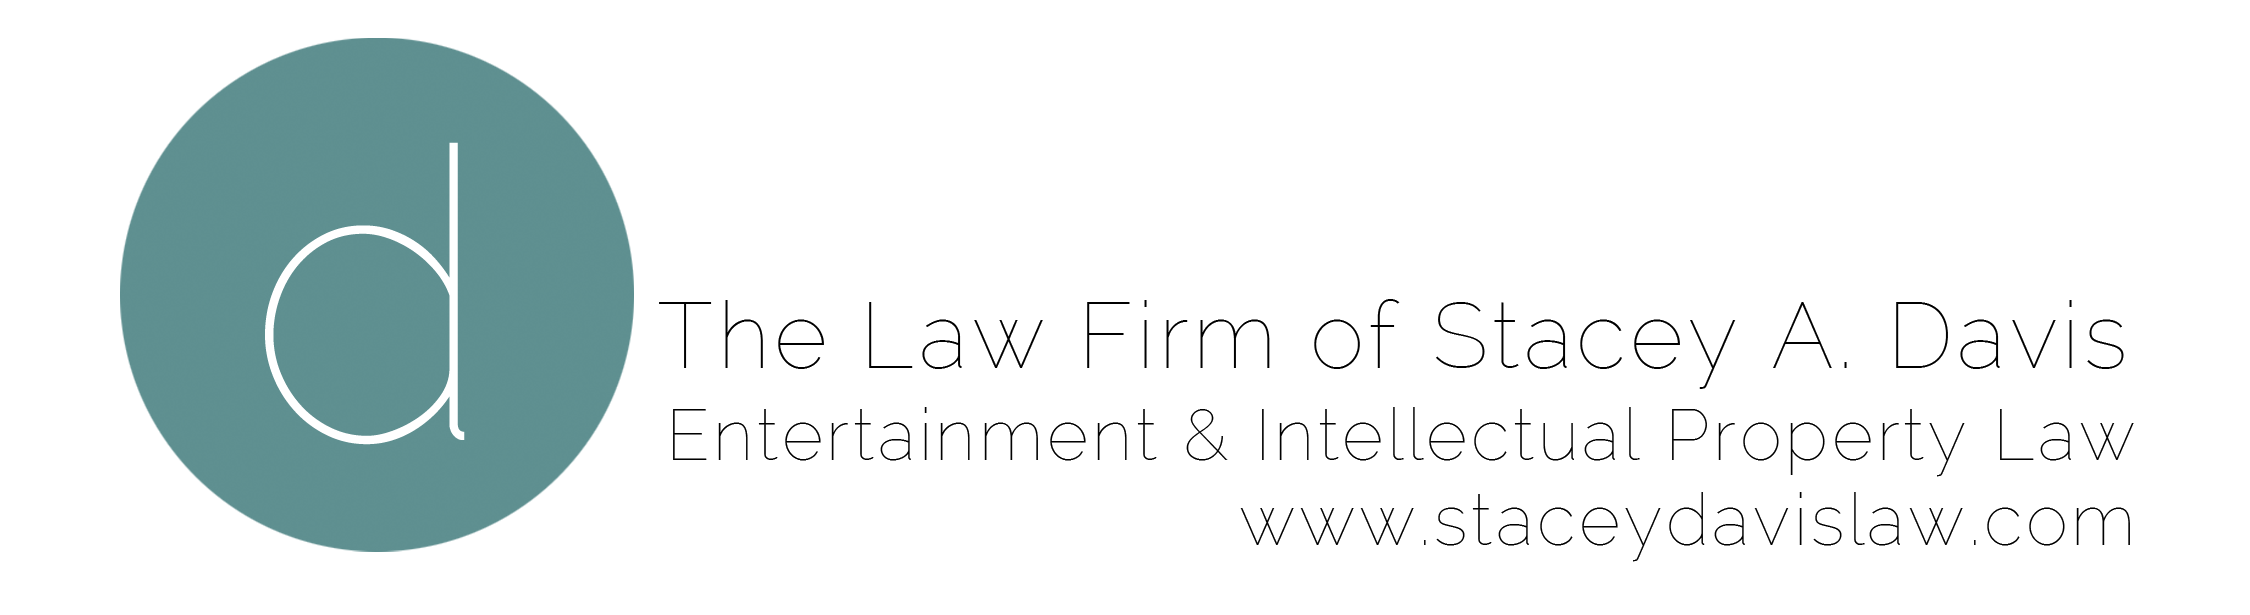 The Law Firm of Stacey A. Davis